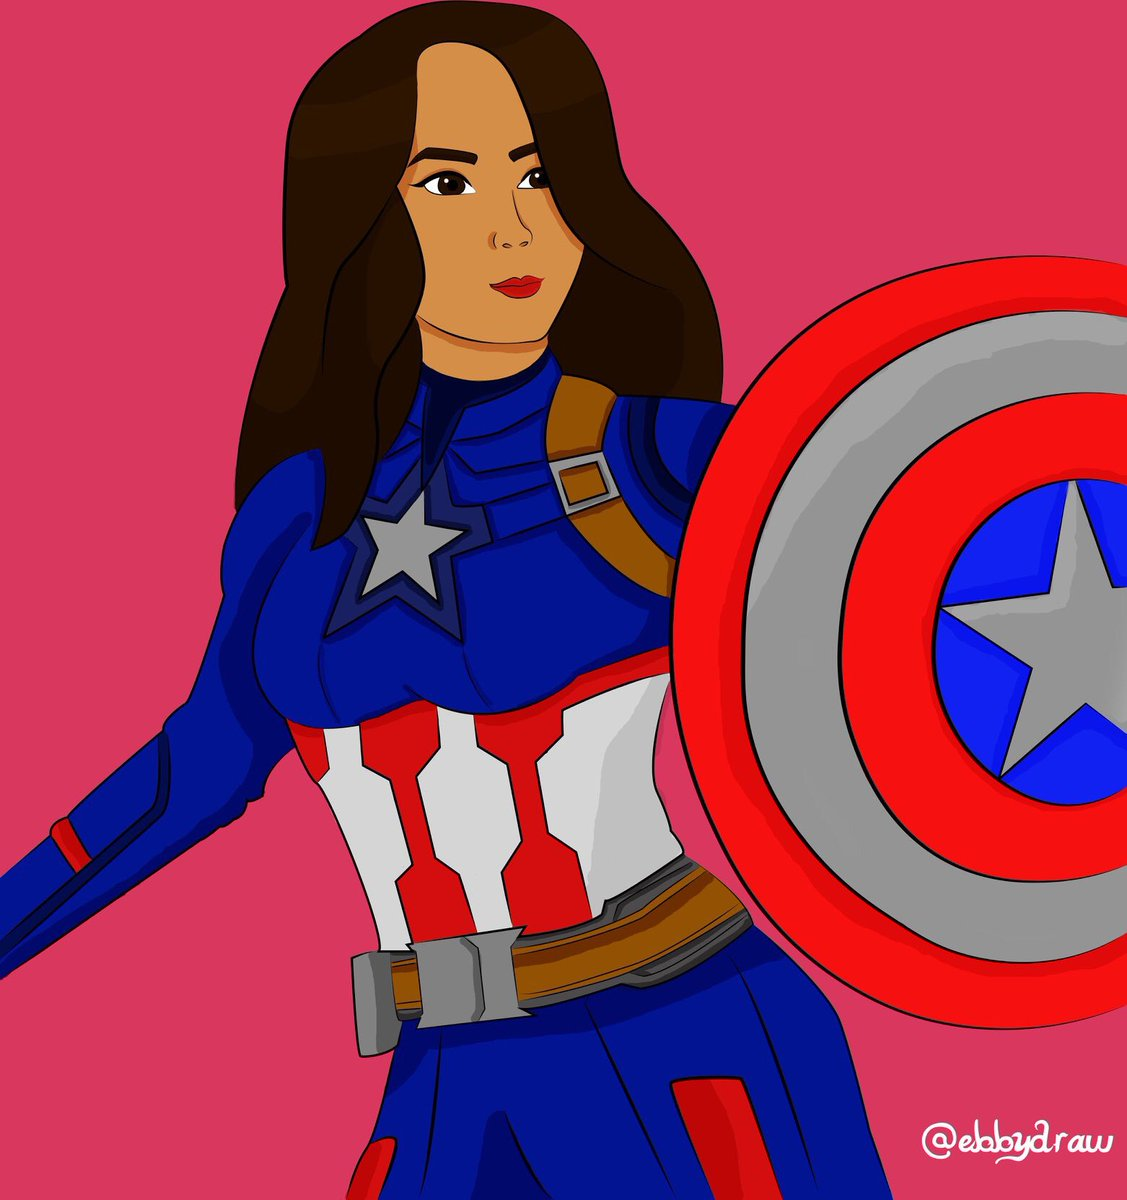 captainamericafanart tagged Tweets and Download Twitter MP4